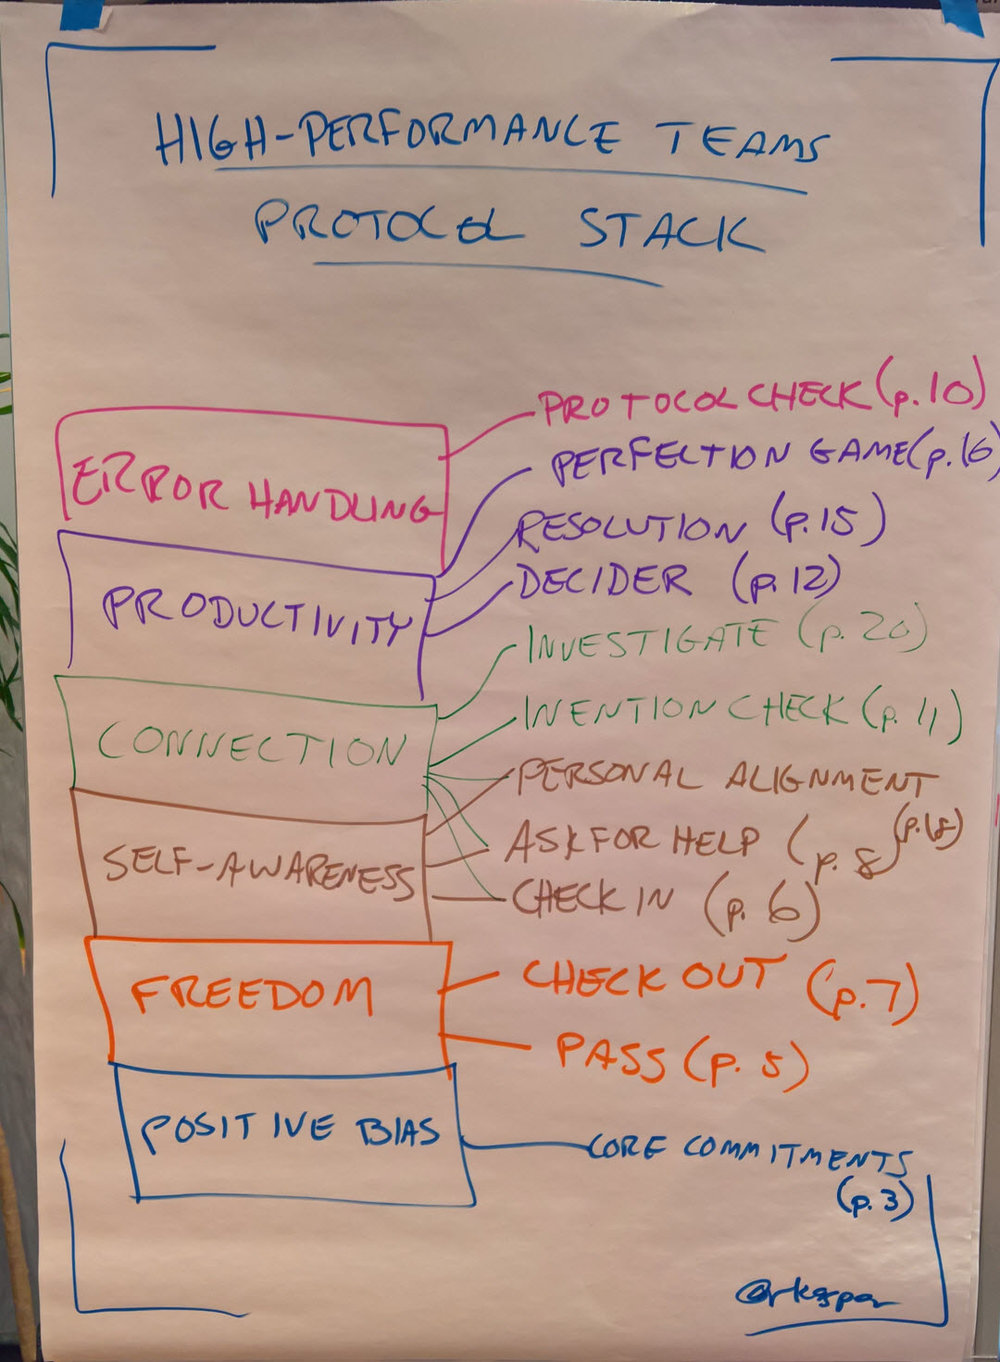 GGcon Flipchart 11 high perf team.jpg